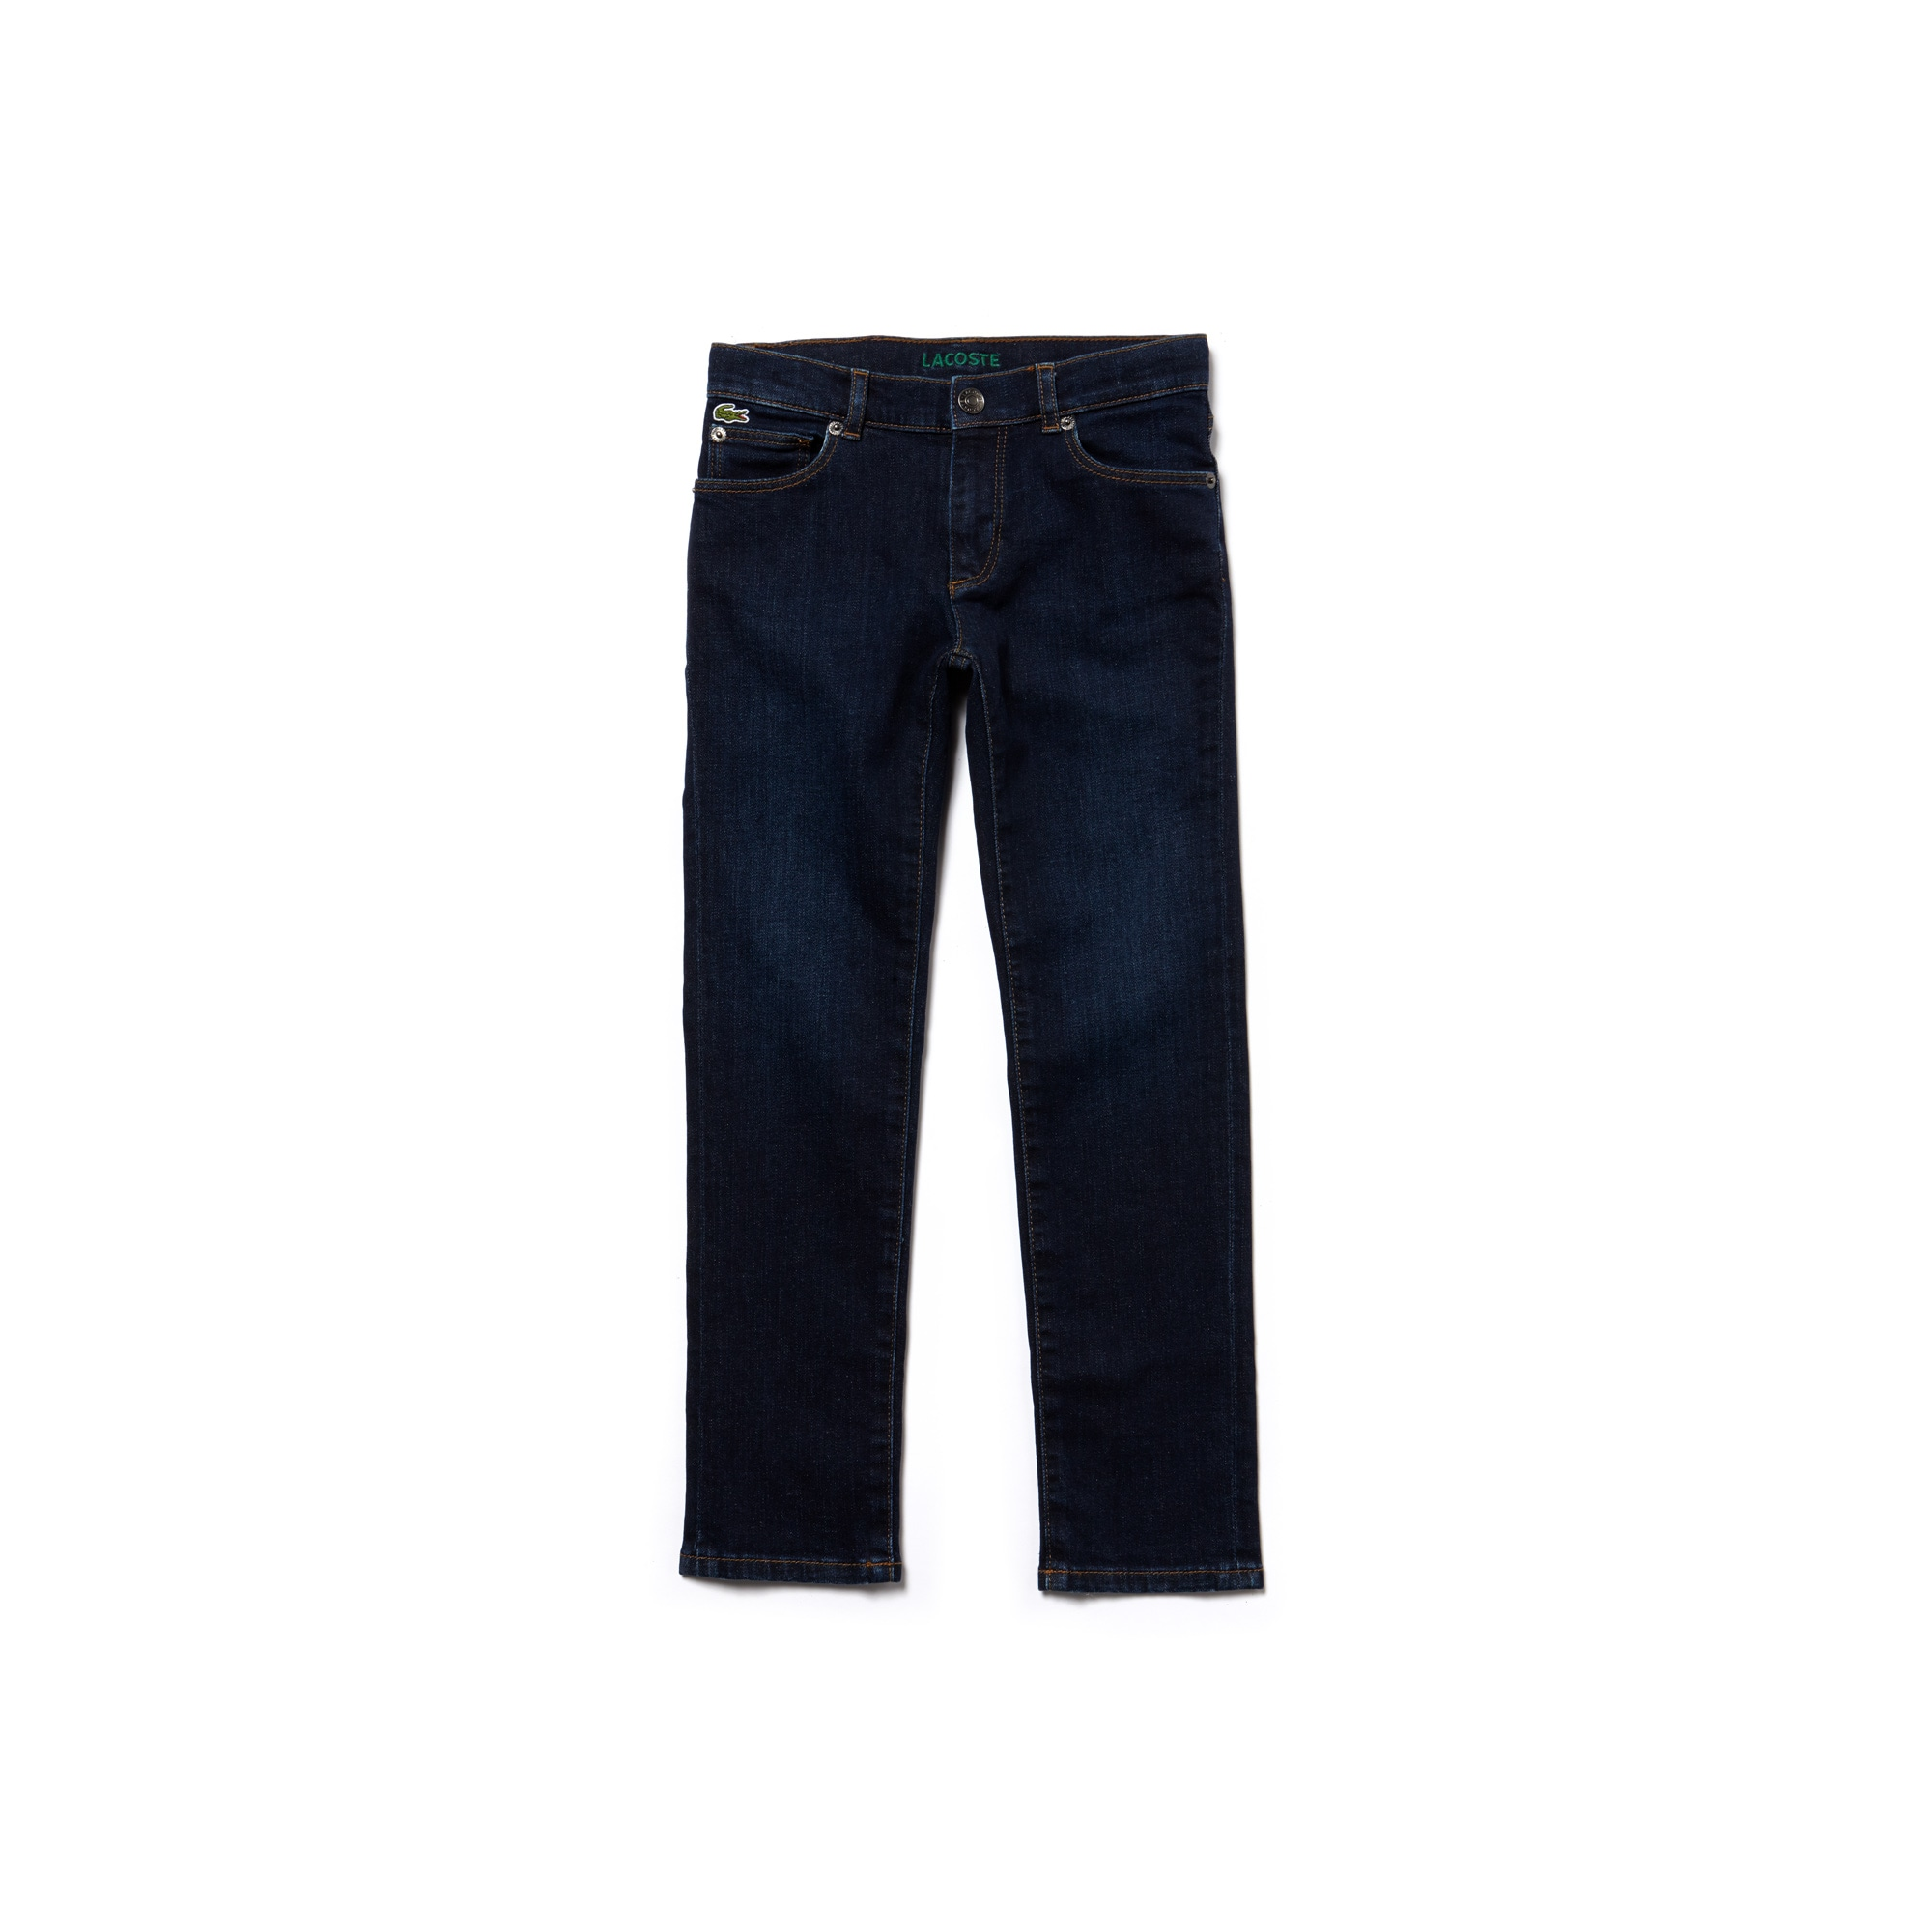 Kids' jeans in cotton denim